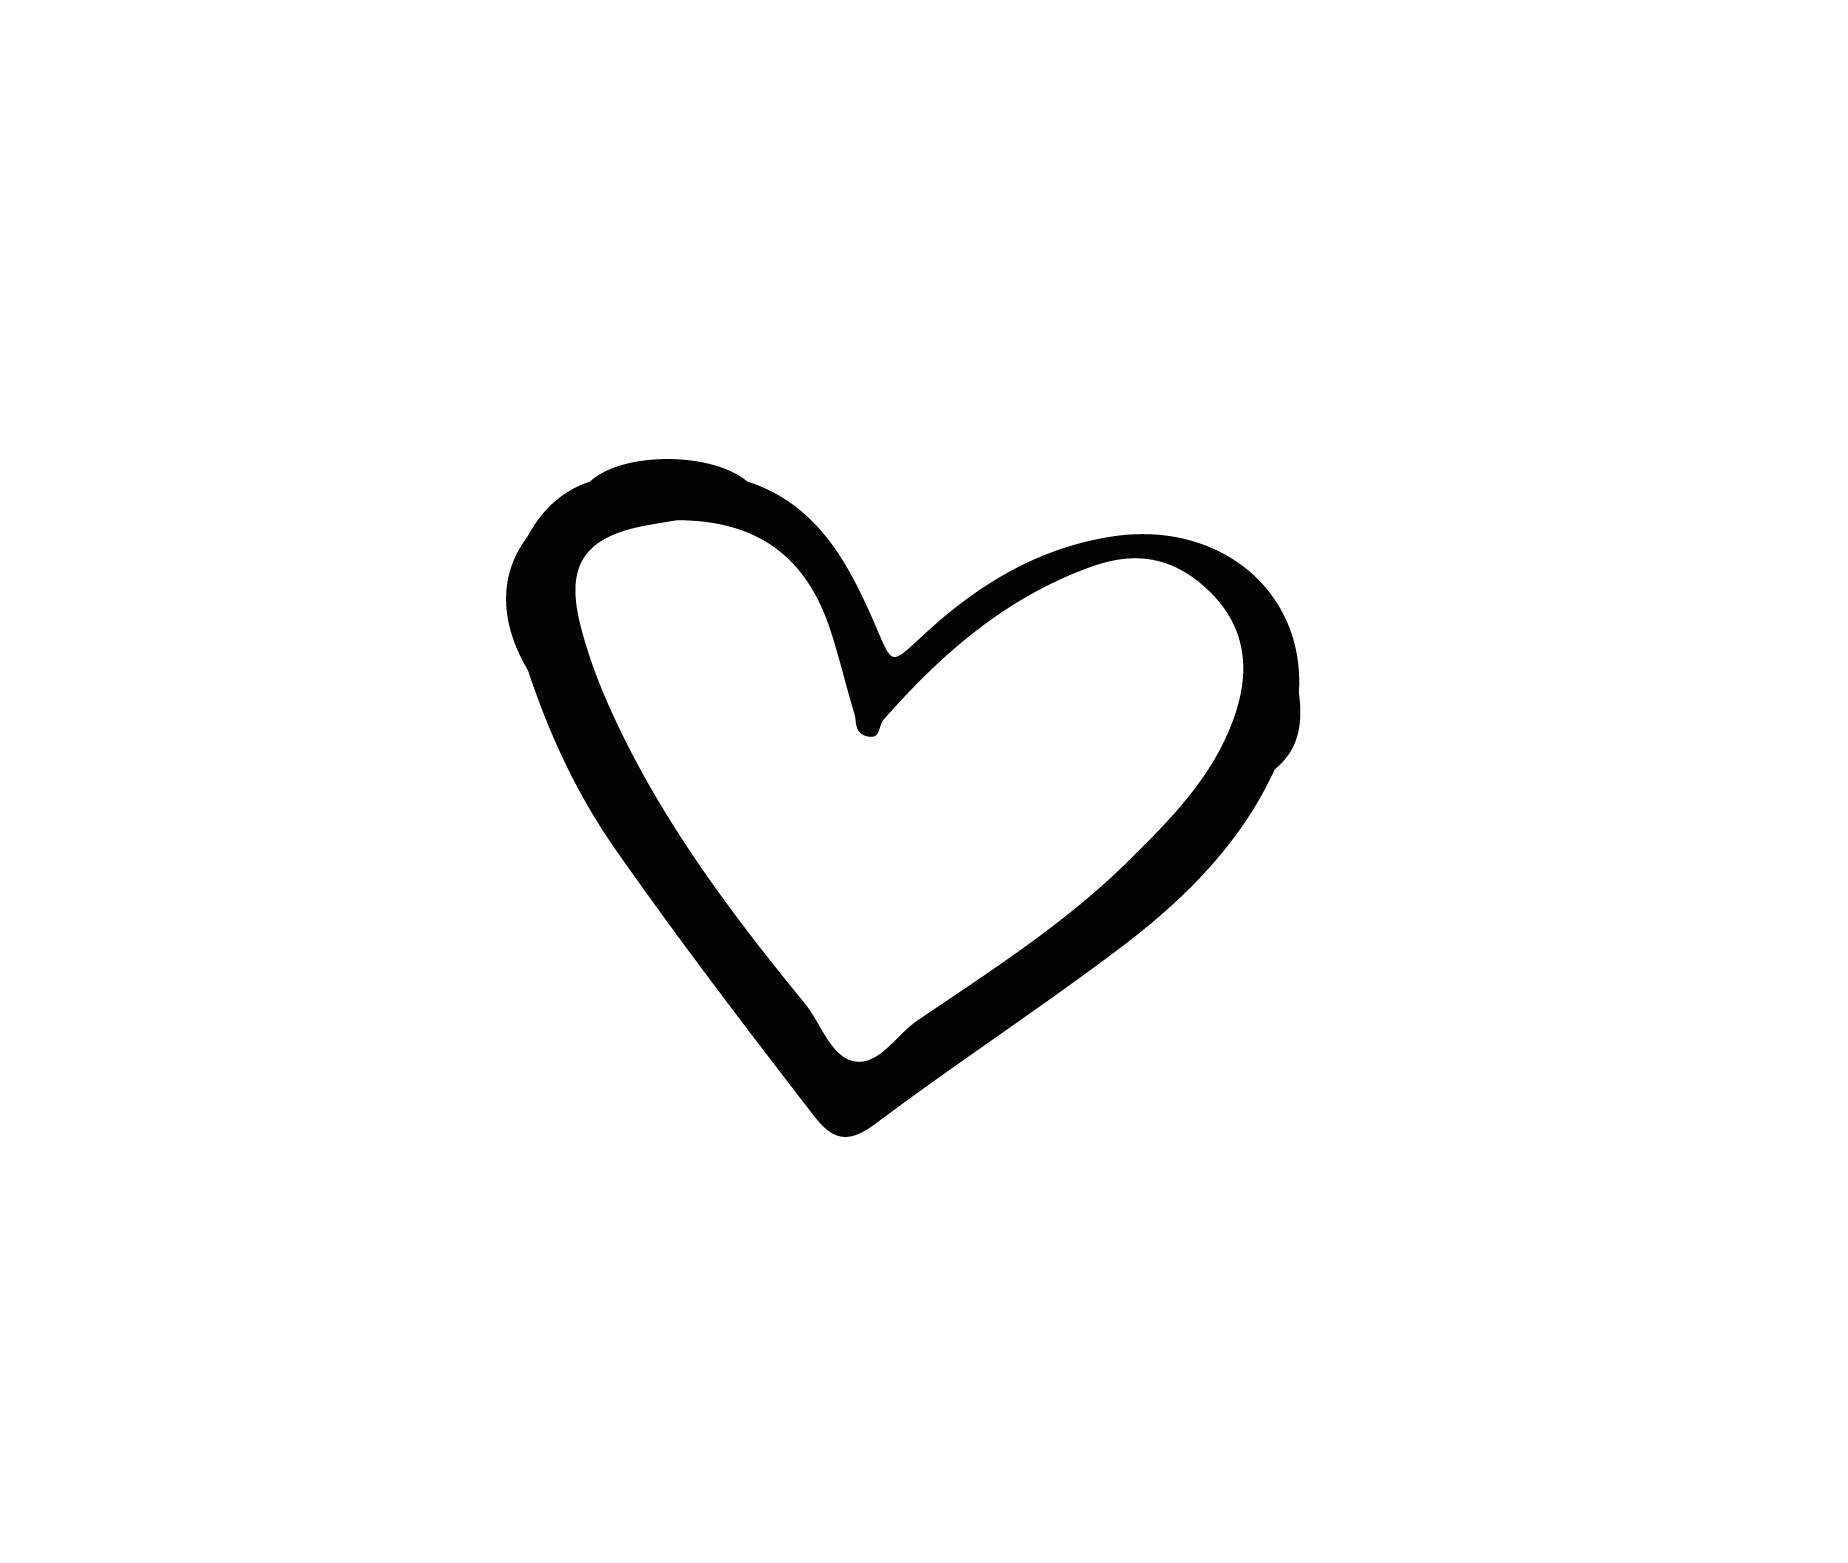 Heart black png. Brand and white hand